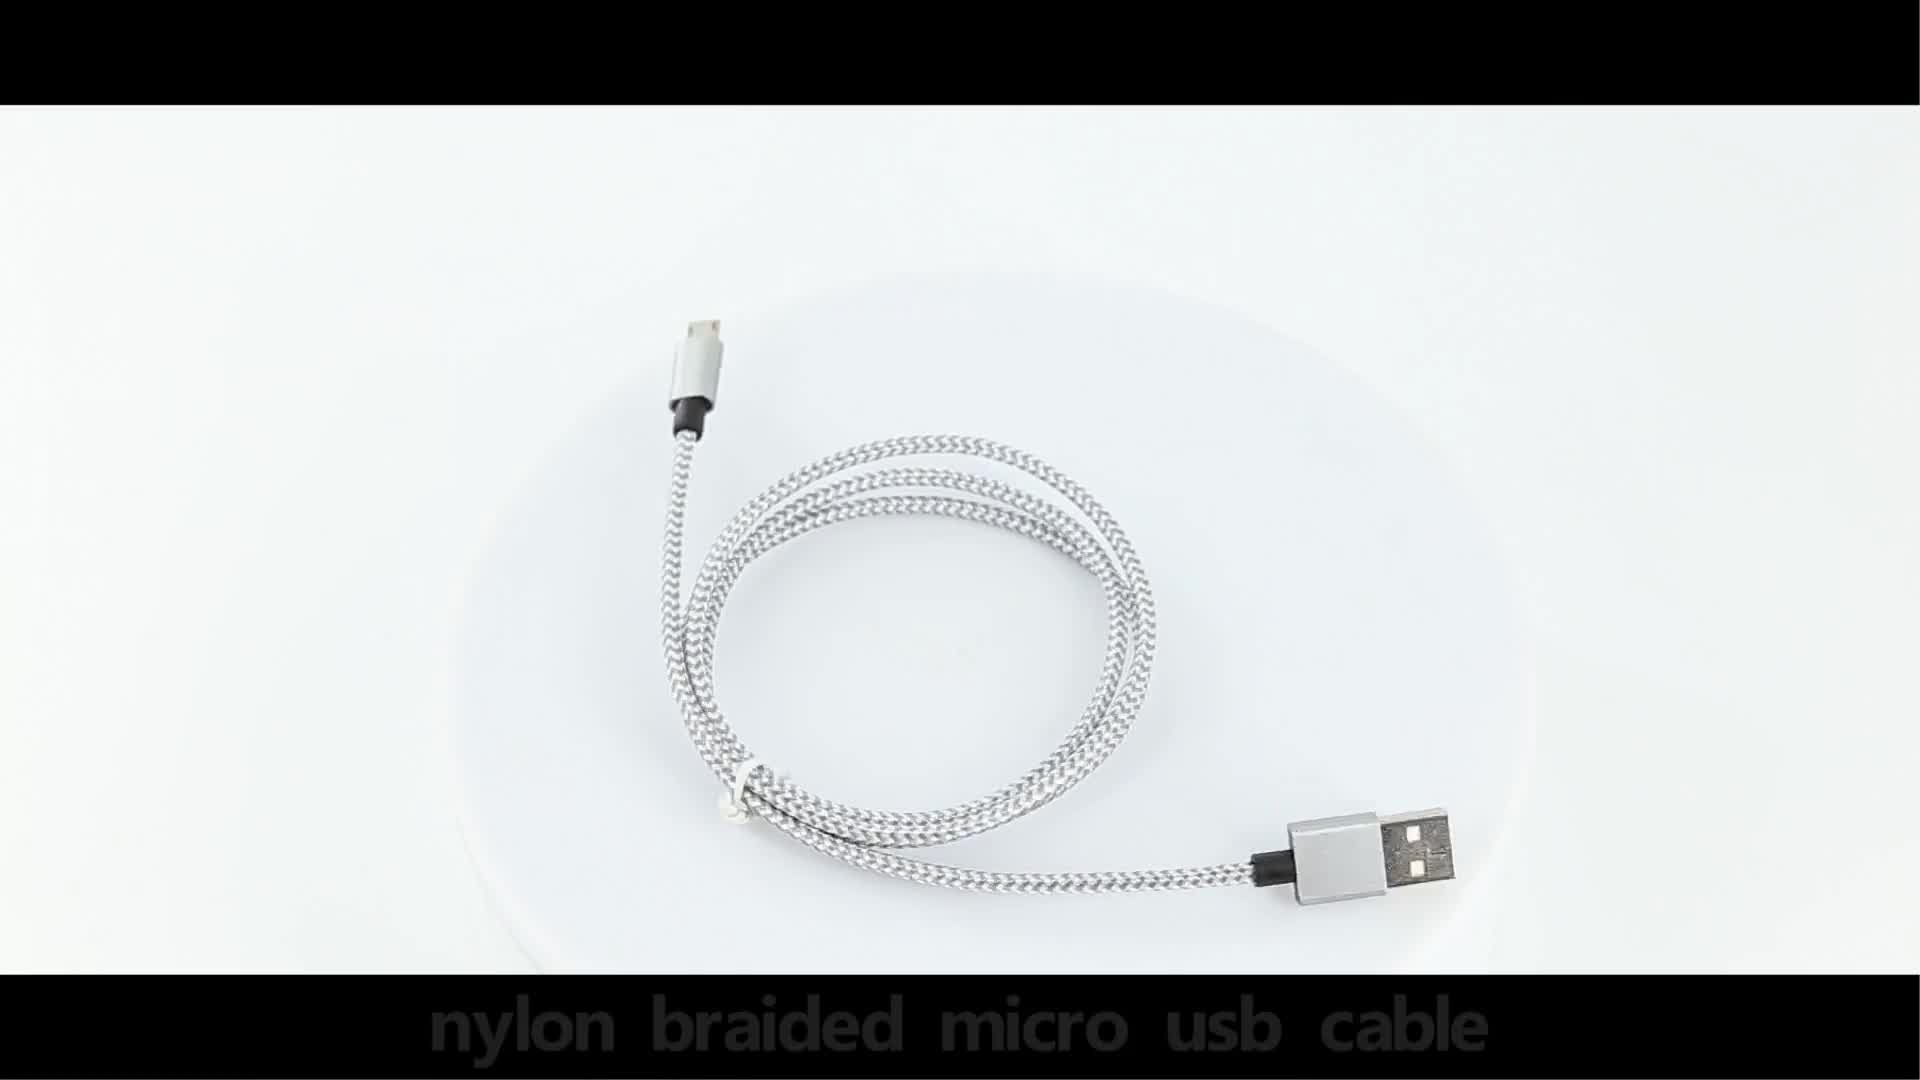 colorful Wholesale data charging micro usb cable for micro nylon braid usb data cable